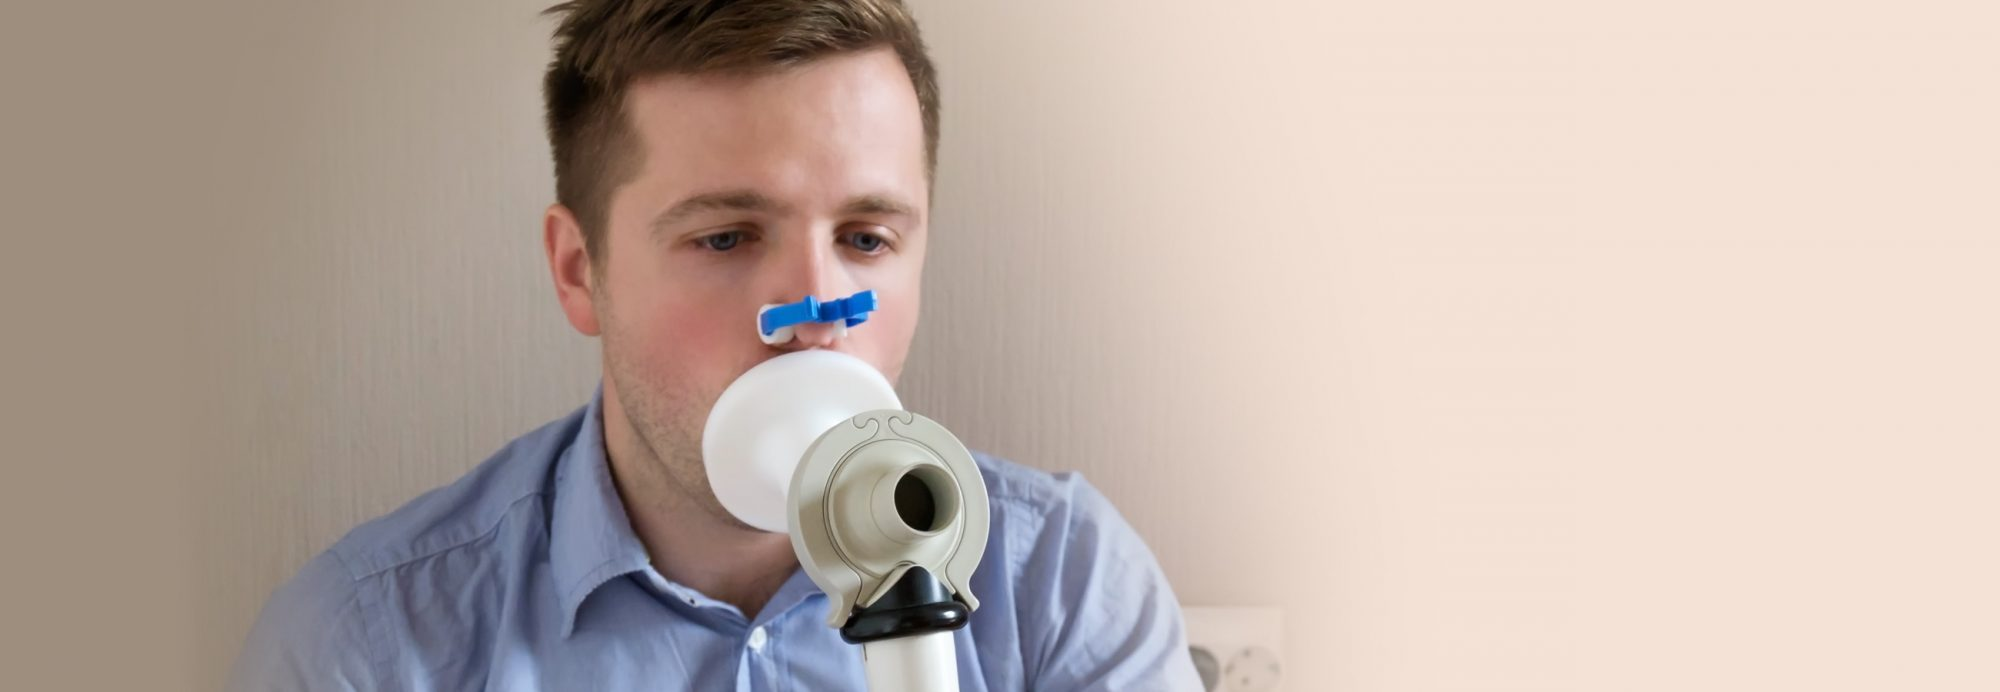 spirometry-testing-at-parkhill-in-bolton